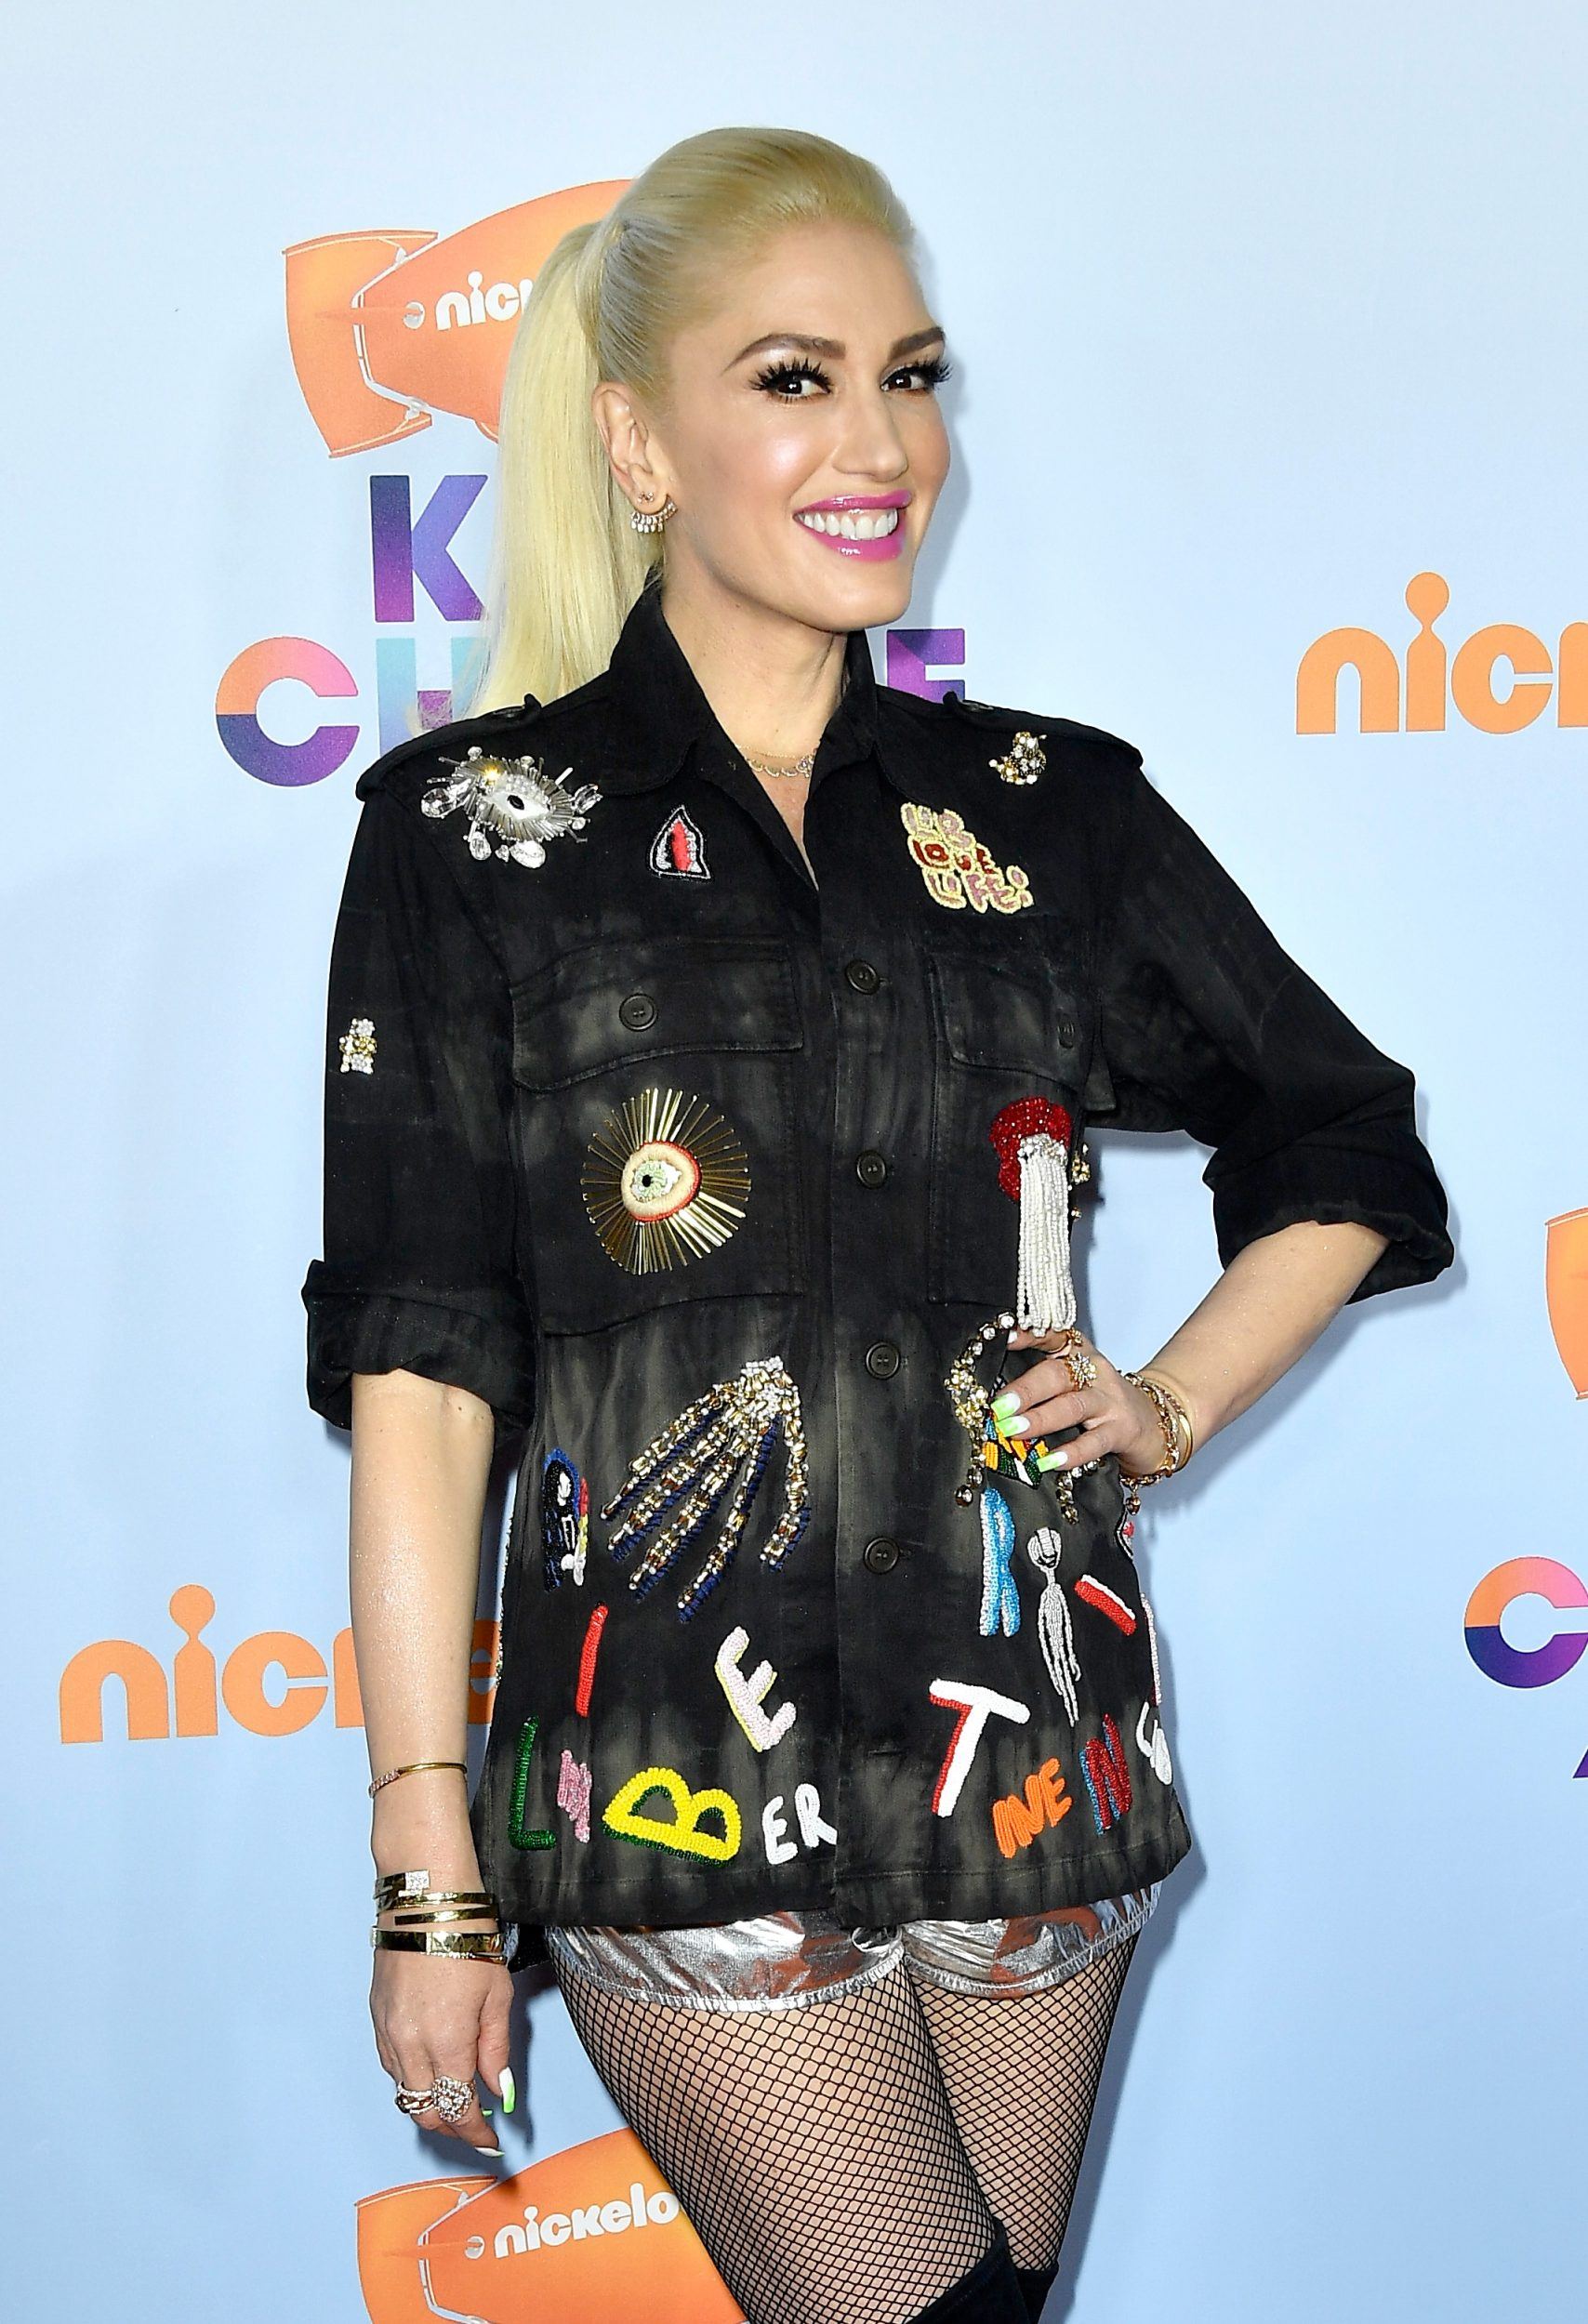 LOS ANGELES, CA - MARCH 11:  Singer Gwen Stefani at Nickelodeon's 2017 Kids' Choice Awards at USC Galen Center on March 11, 2017 in Los Angeles, California.  (Photo by Frazer Harrison/Getty Images - Issued to Media by Nickelodeon - Issued to Media by Nickelodeon)